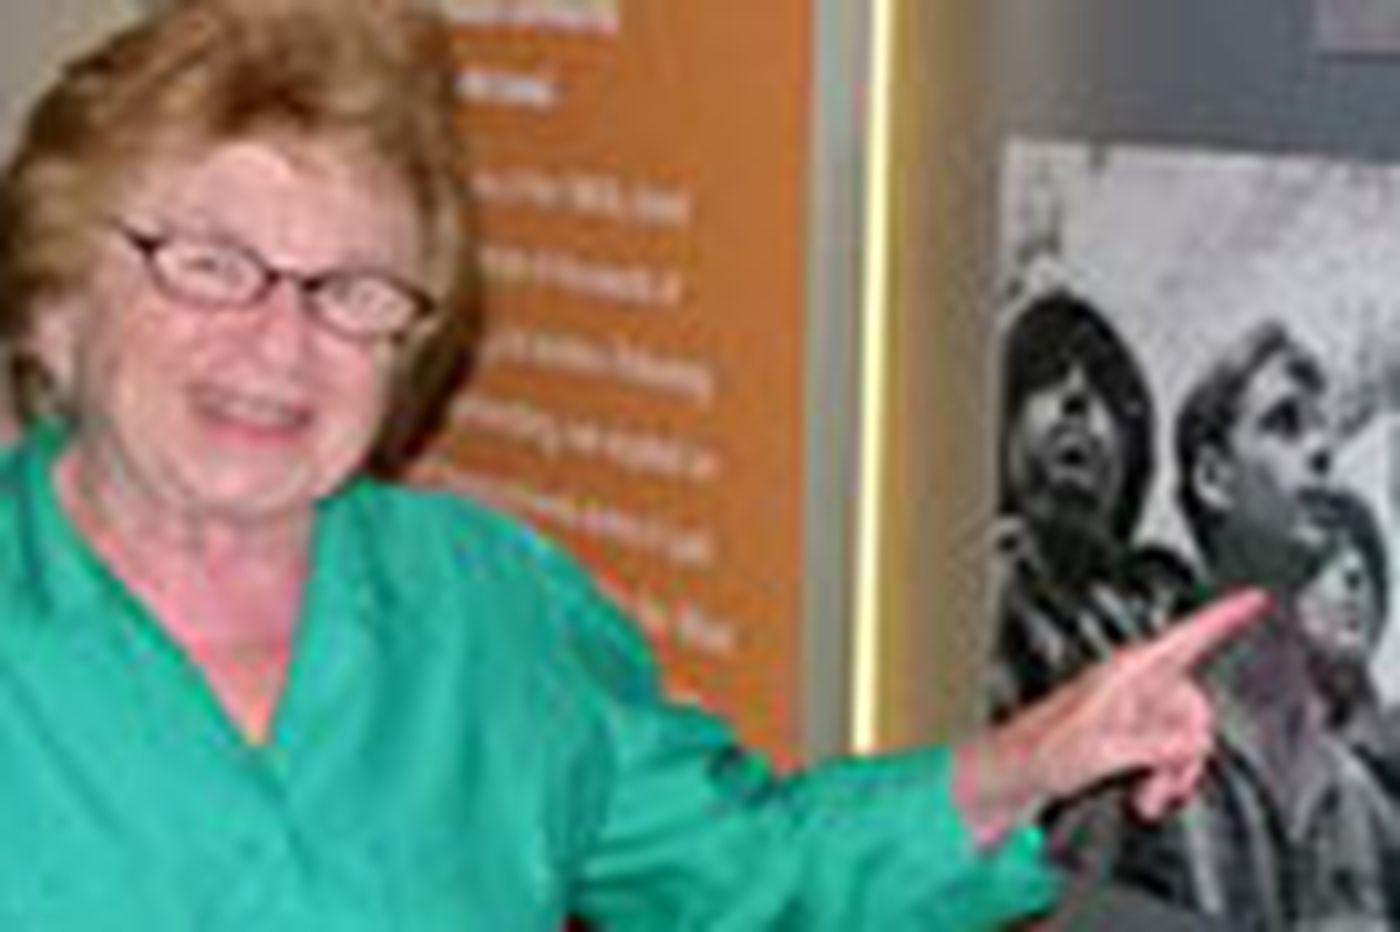 Dan Gross: Dr. Ruth gets some - recognition, that is